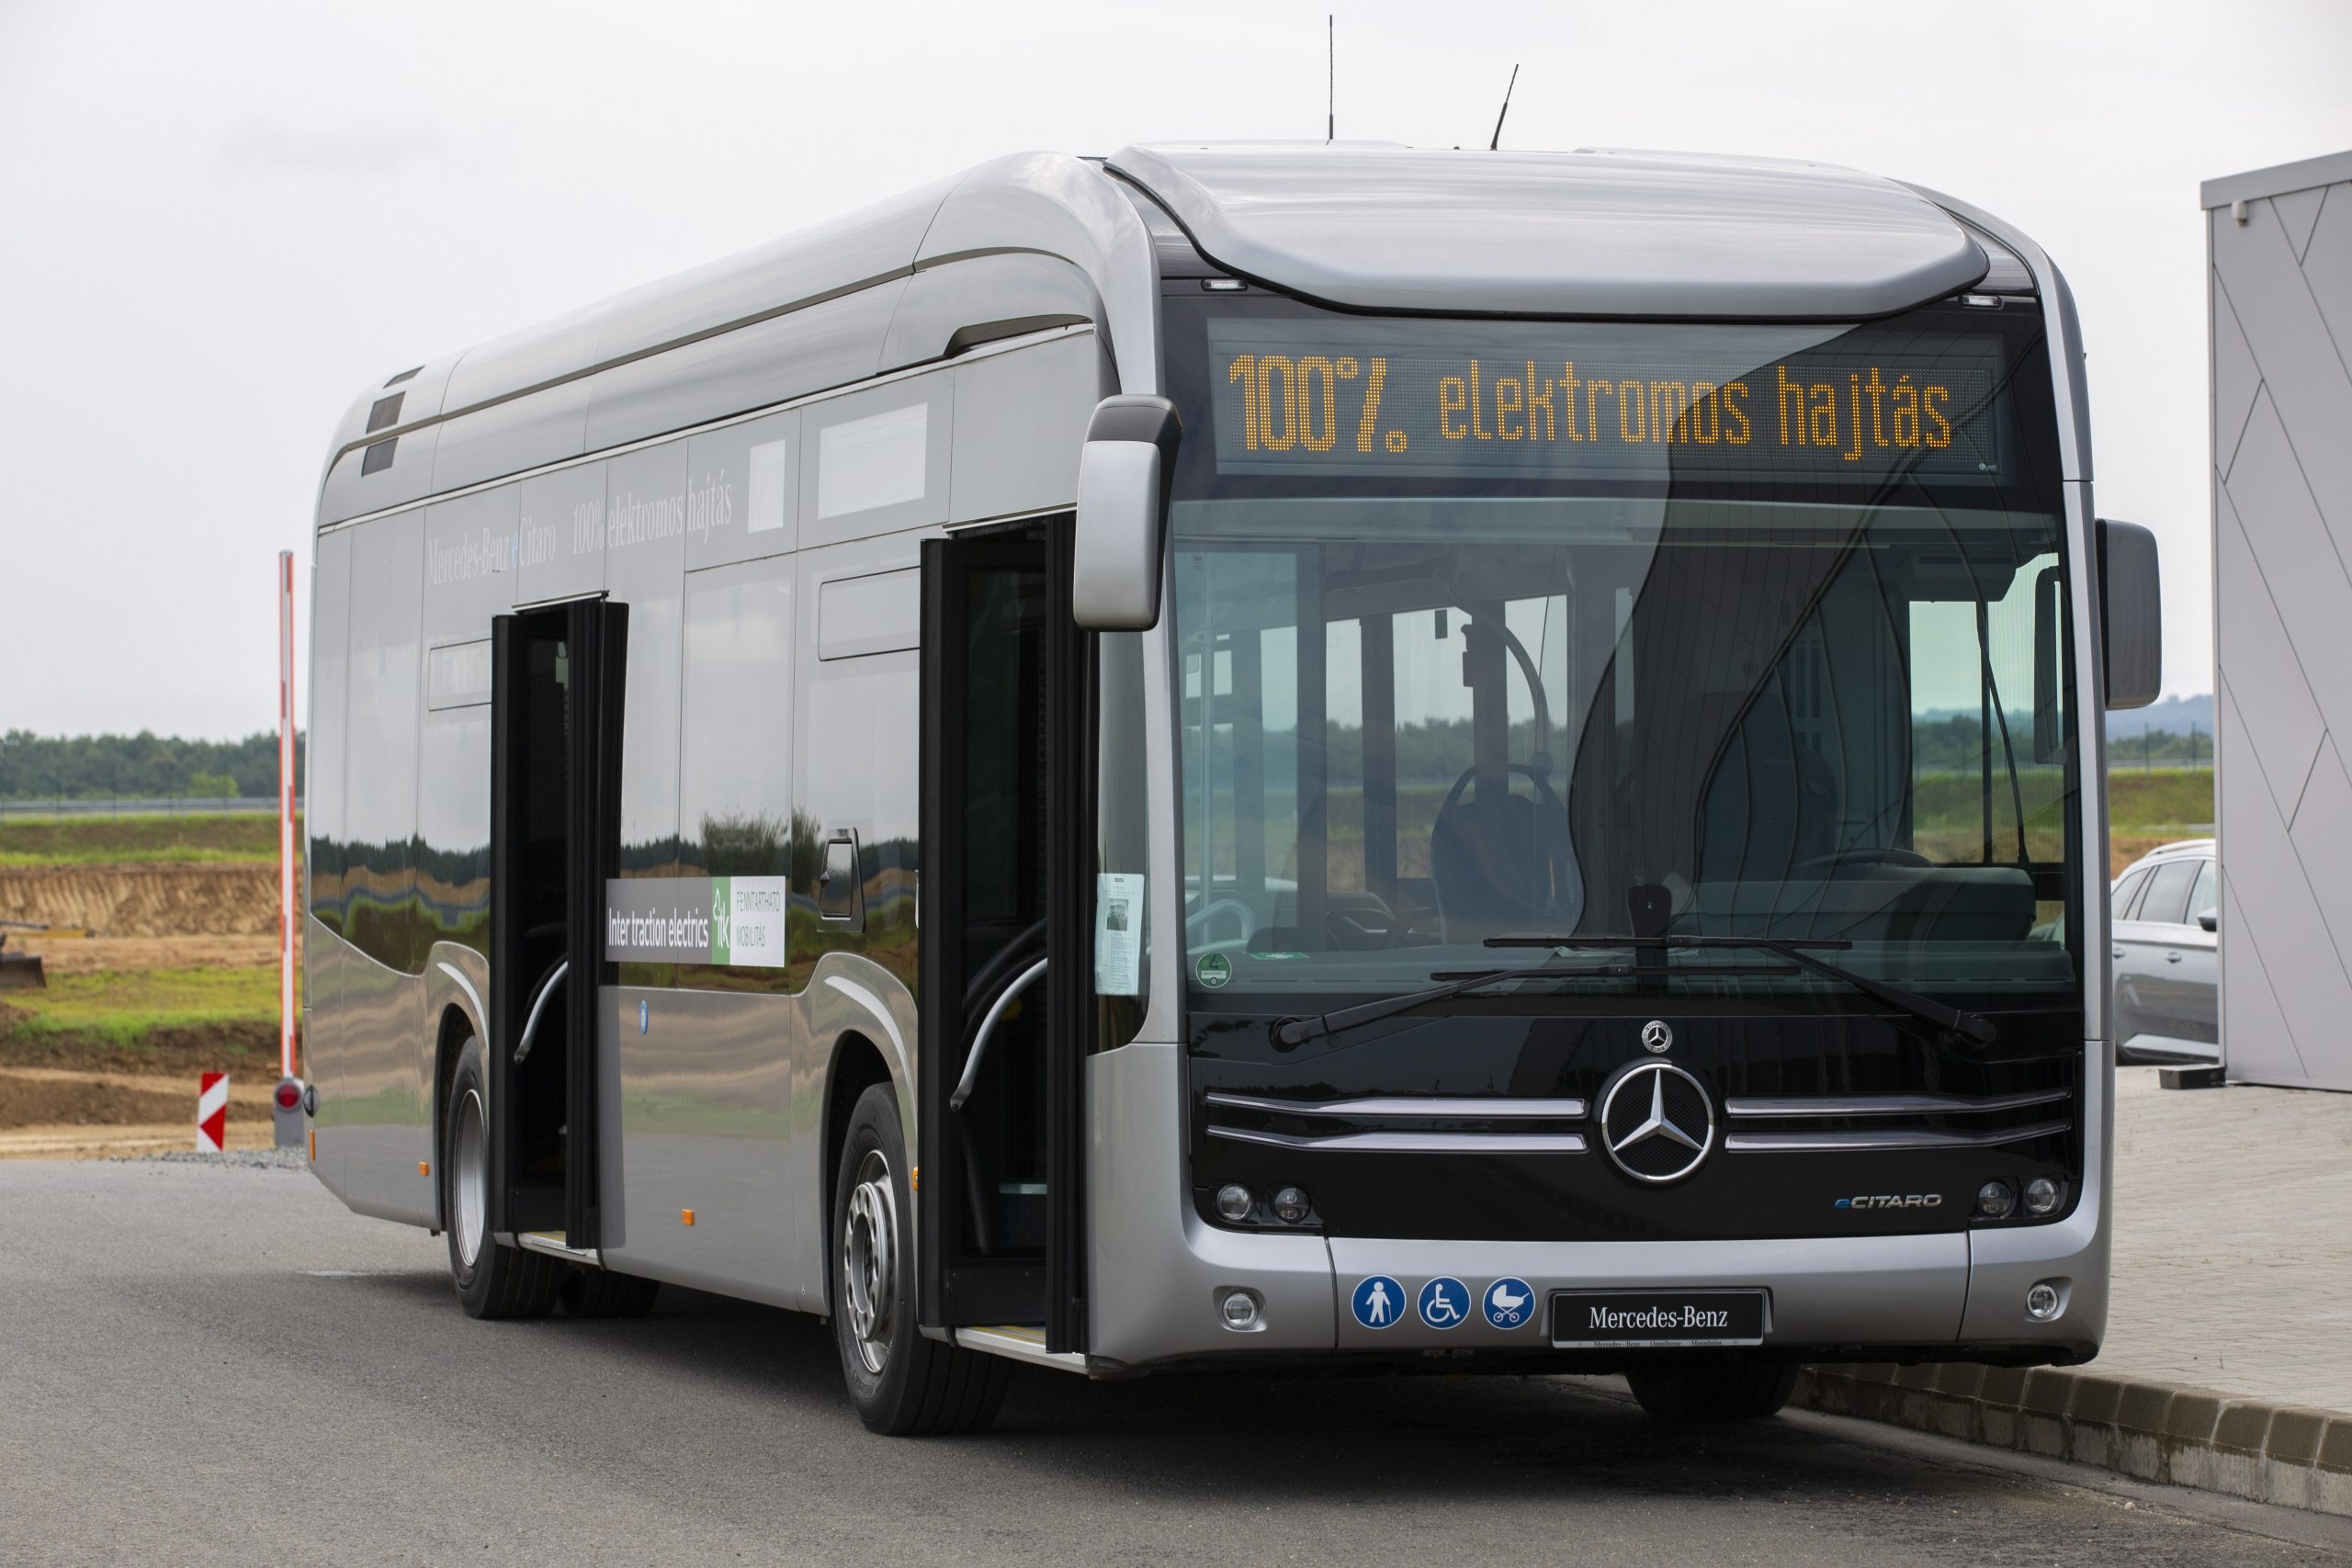 Green Bus Programme to Help Cities to Electric Transport